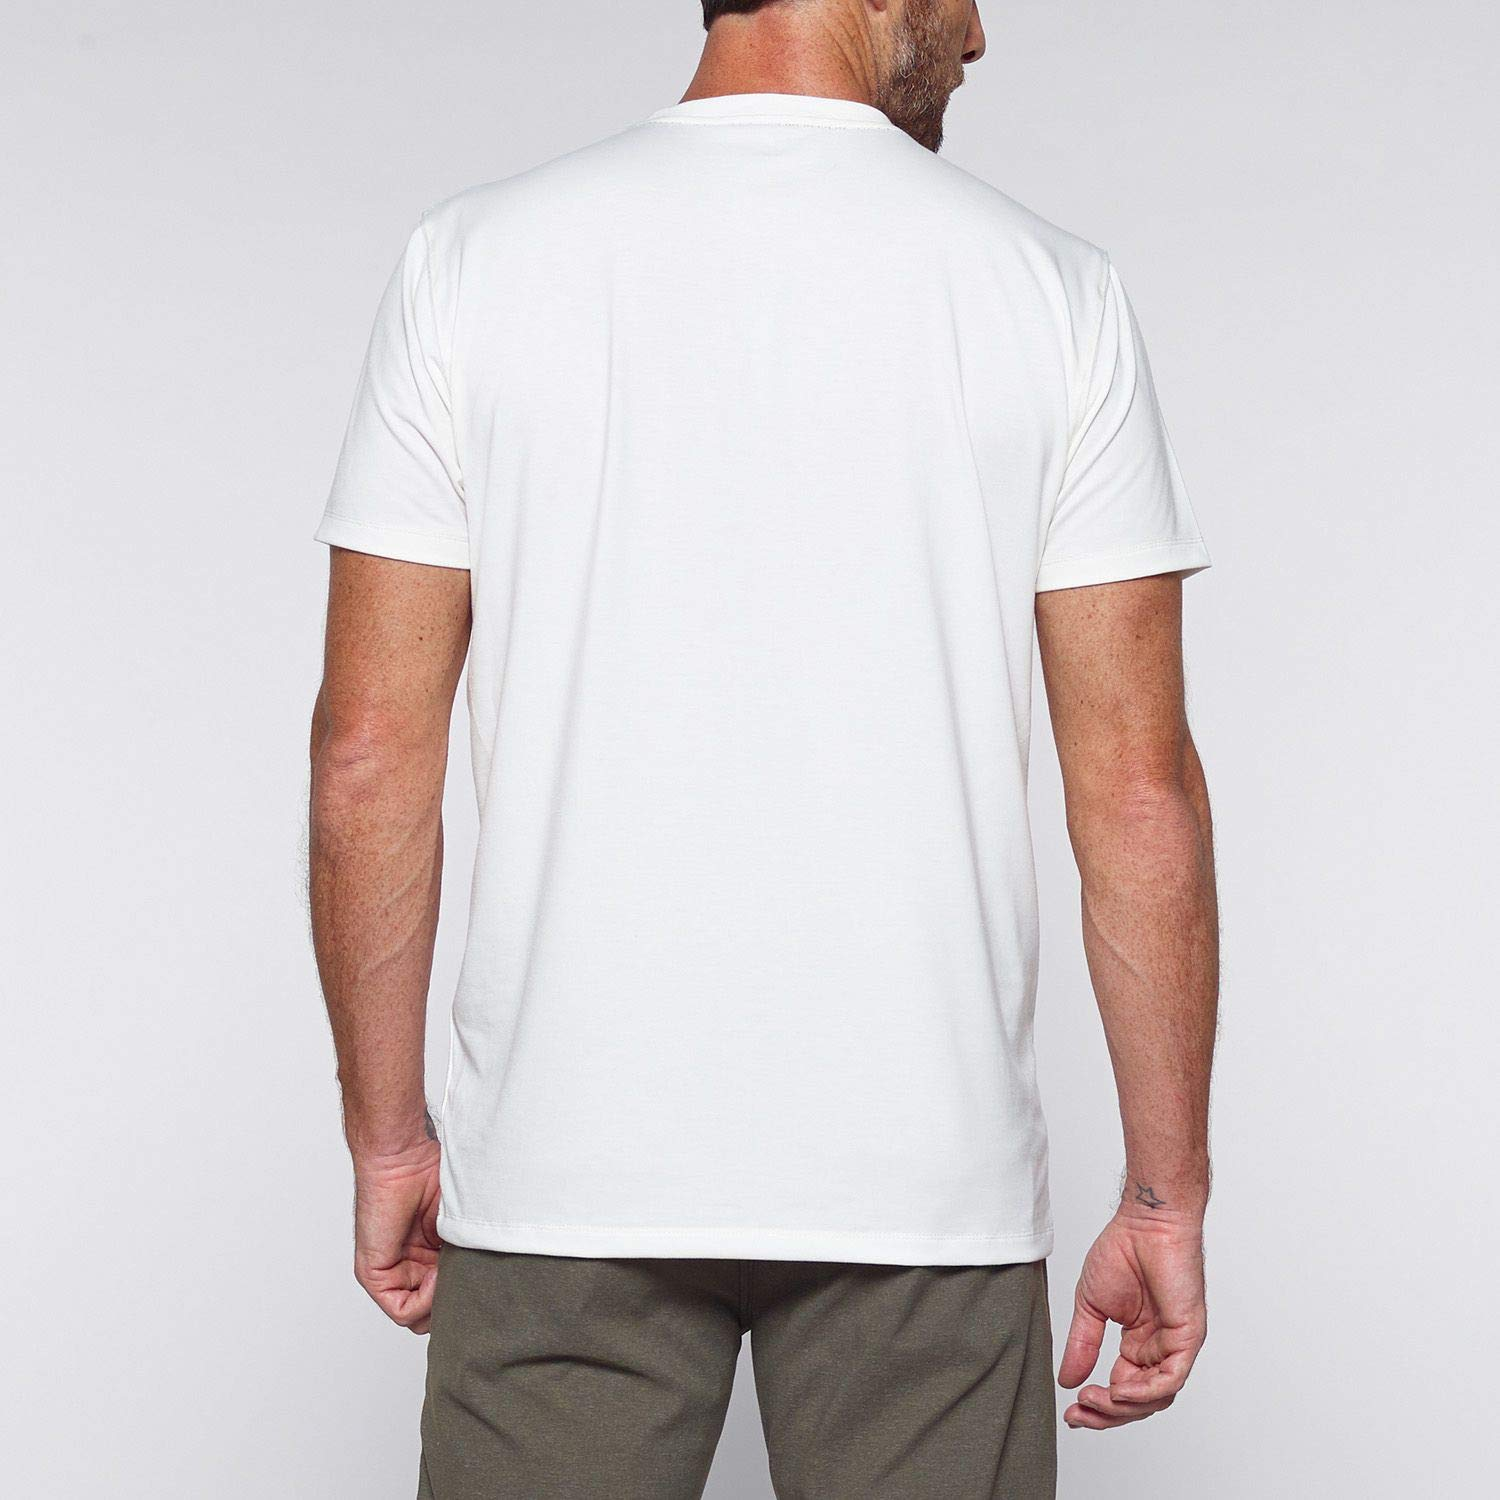 Berg Outdoor Sobreiros Tech T-Shirt Hombre